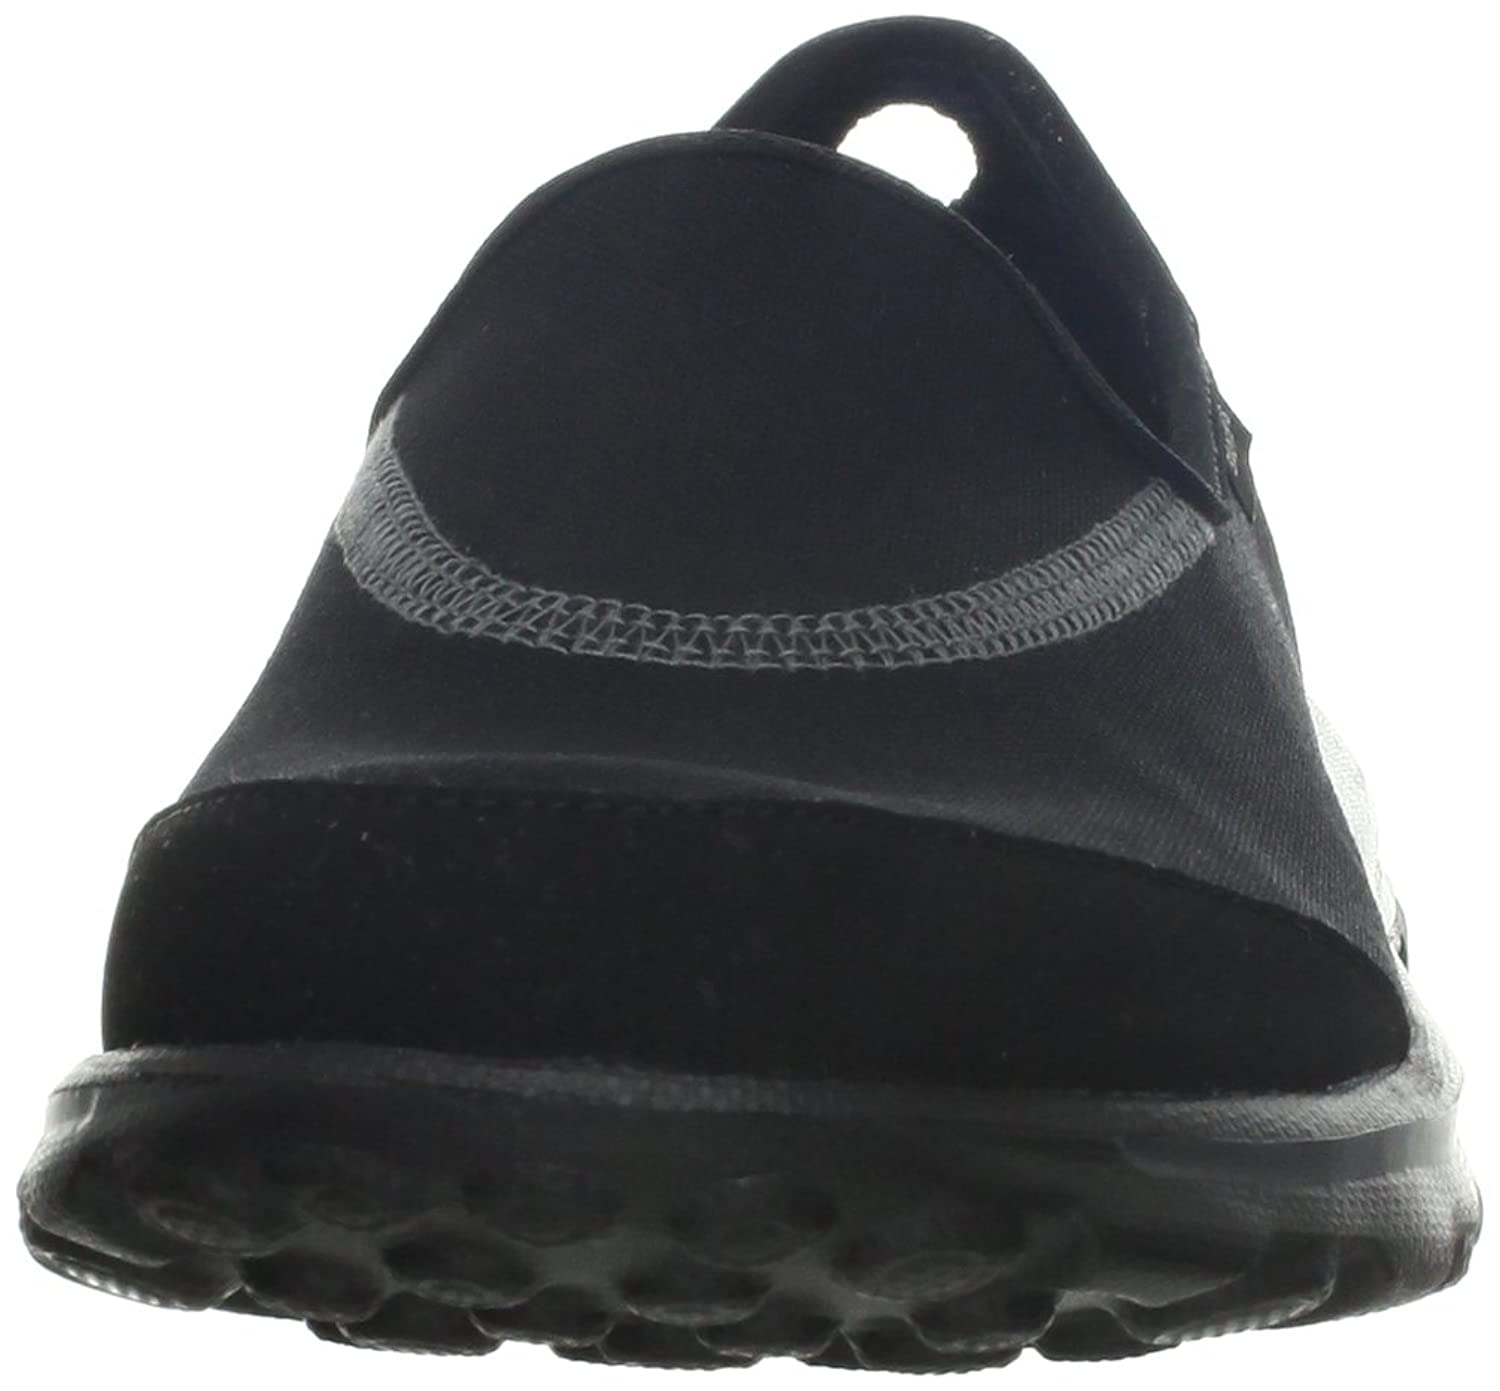 skechers air cooled memory foam womens black